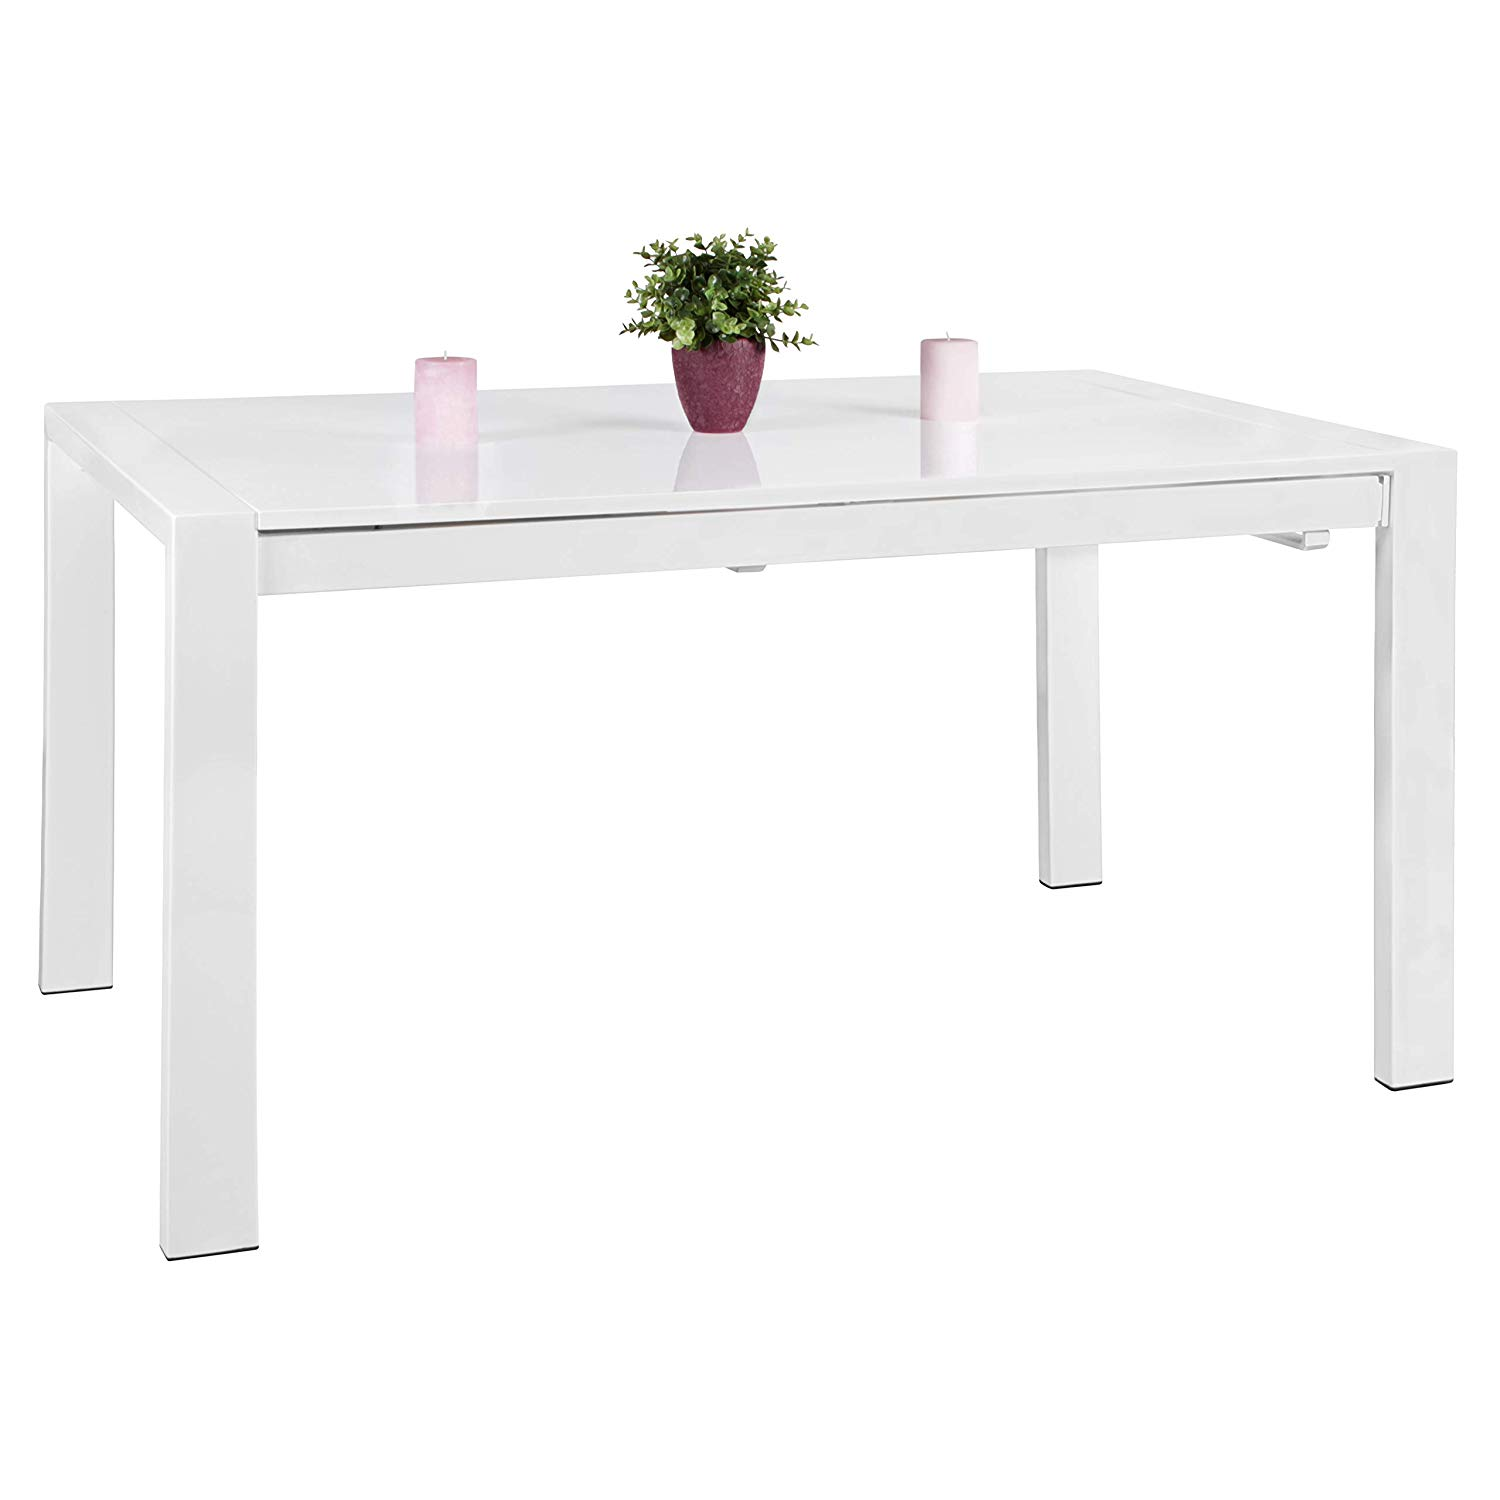 Table 140 Glory Dining Table 140 230x90cm